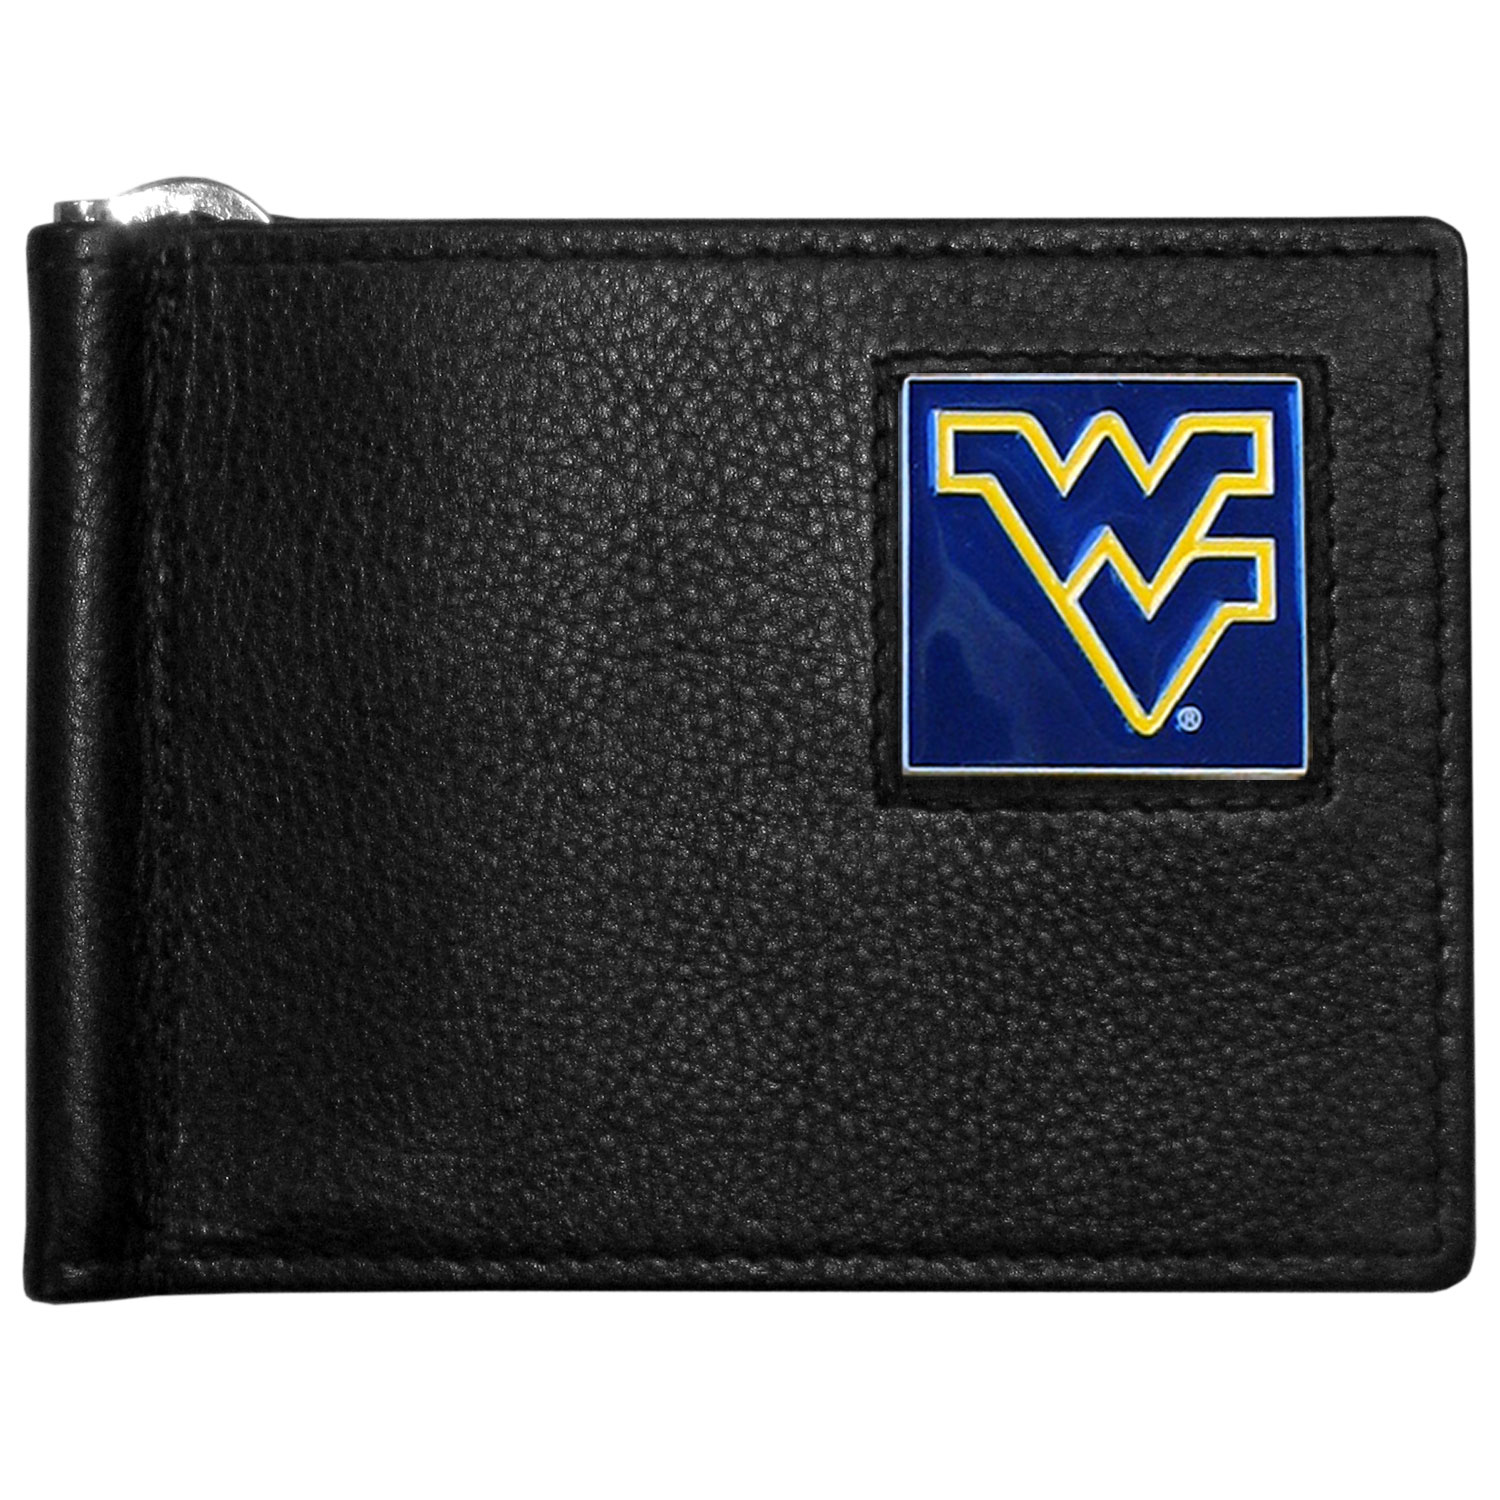 W. Virginia Mountaineers Leather Bill Clip Wallet - This cool new style wallet features an inner, metal bill clip that lips up for easy access. The super slim wallet holds tons of stuff with ample pockets, credit card slots & windowed ID slot. The wallet is made of genuine fine grain leather and it finished with a metal W. Virginia Mountaineers emblem. The wallet is shipped in gift box packaging.